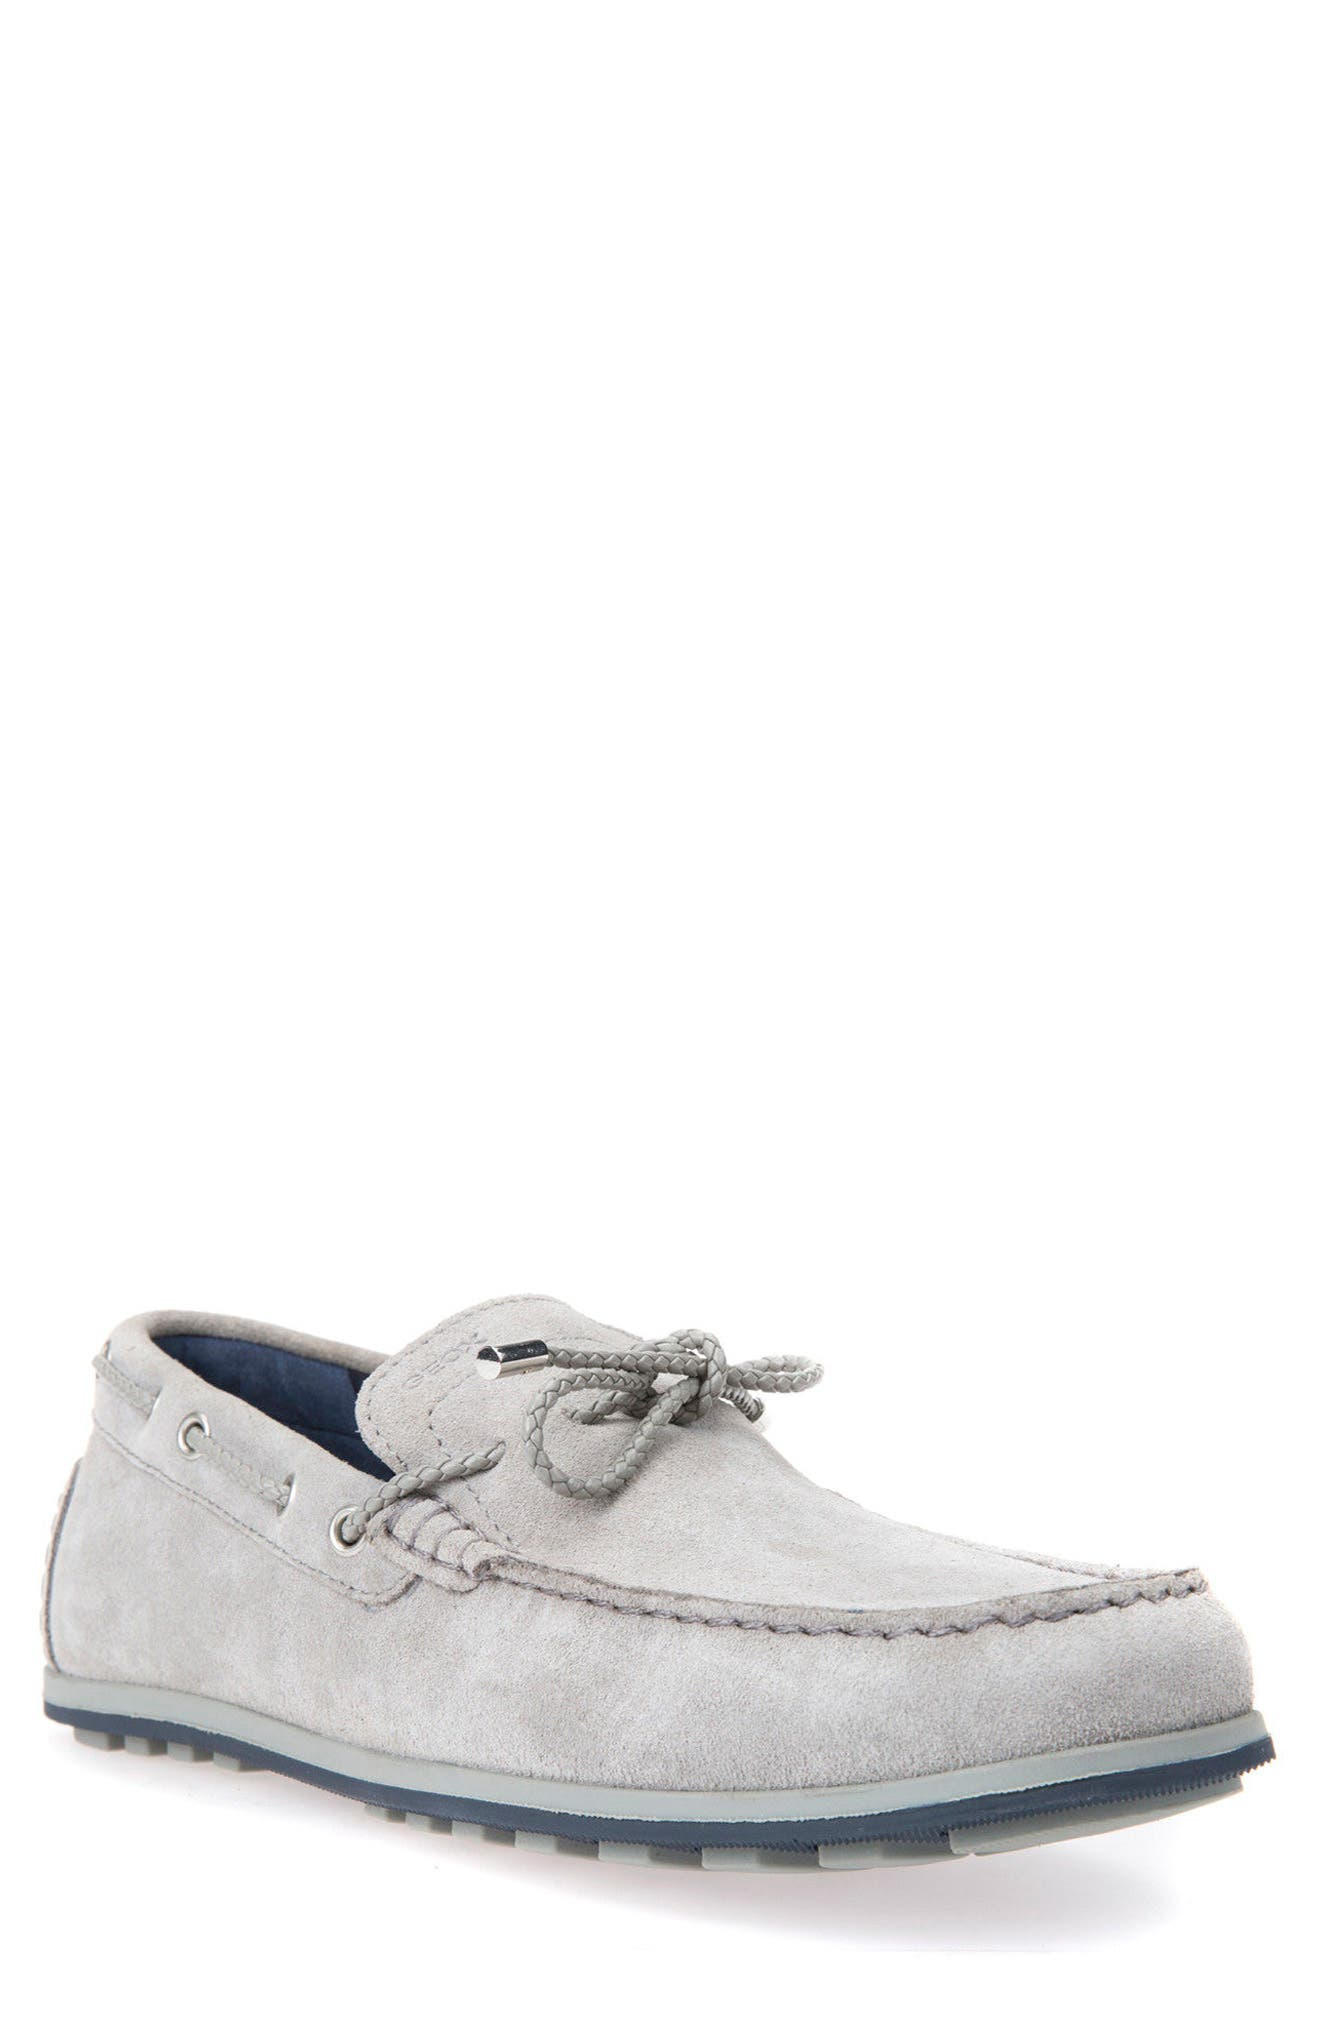 Mirvin 2 Boat Shoe,                         Main,                         color, Stone Suede